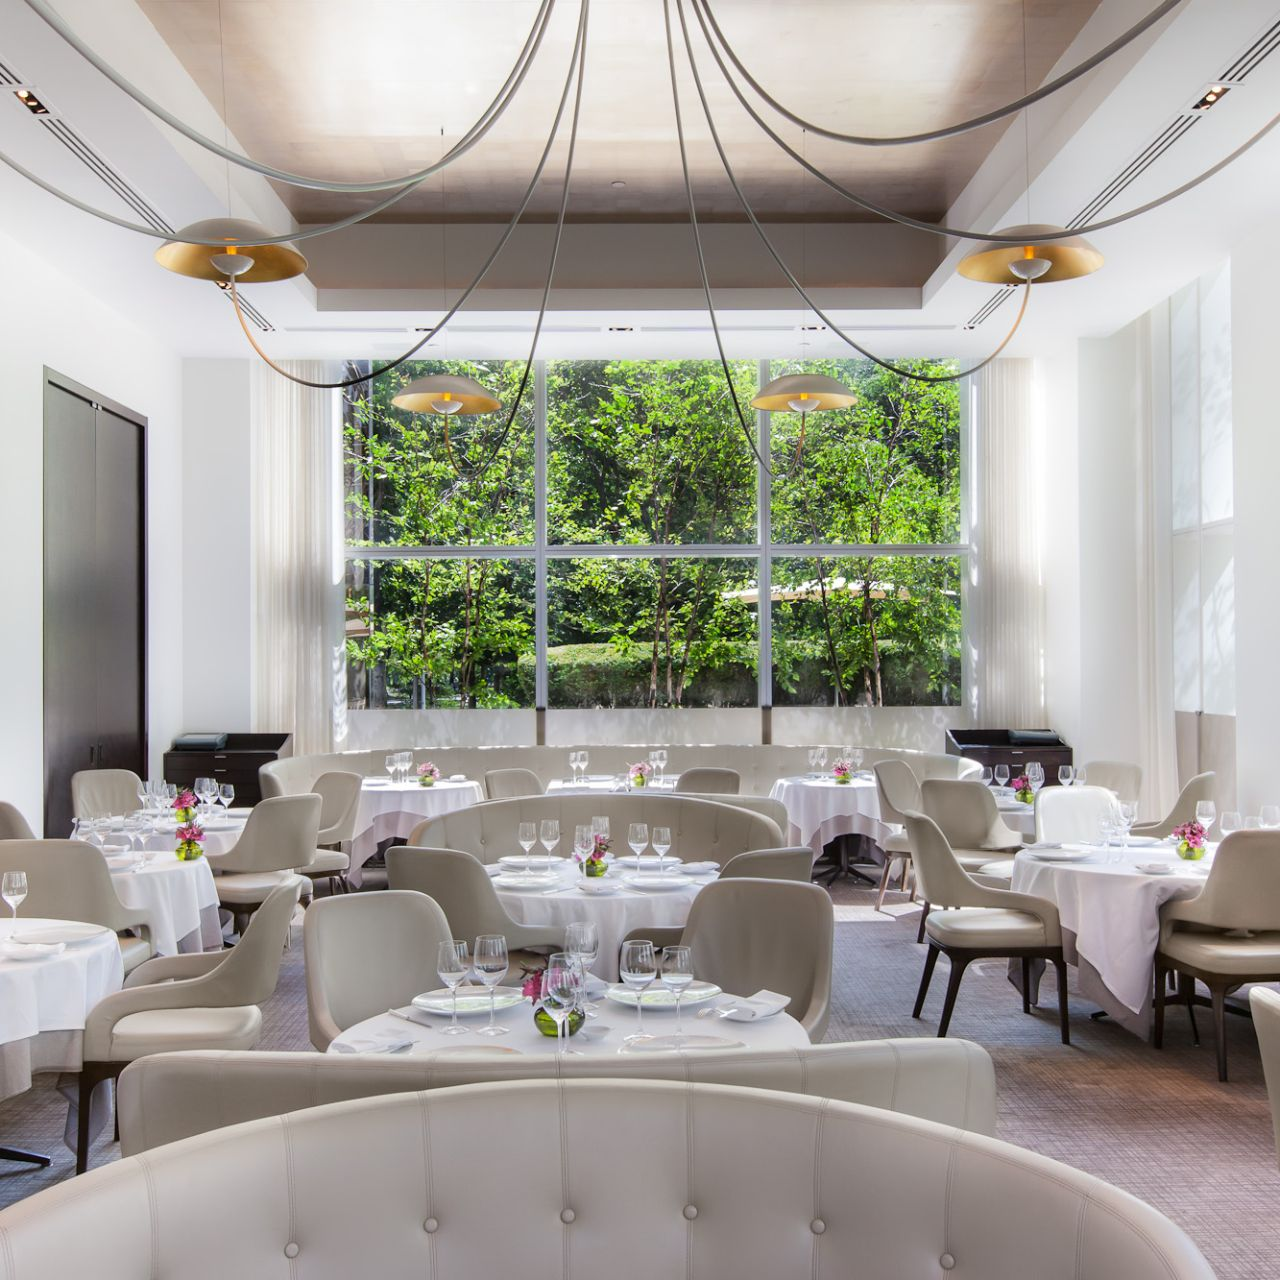 Jean-Georges Restaurante - New York, NY  OpenTable